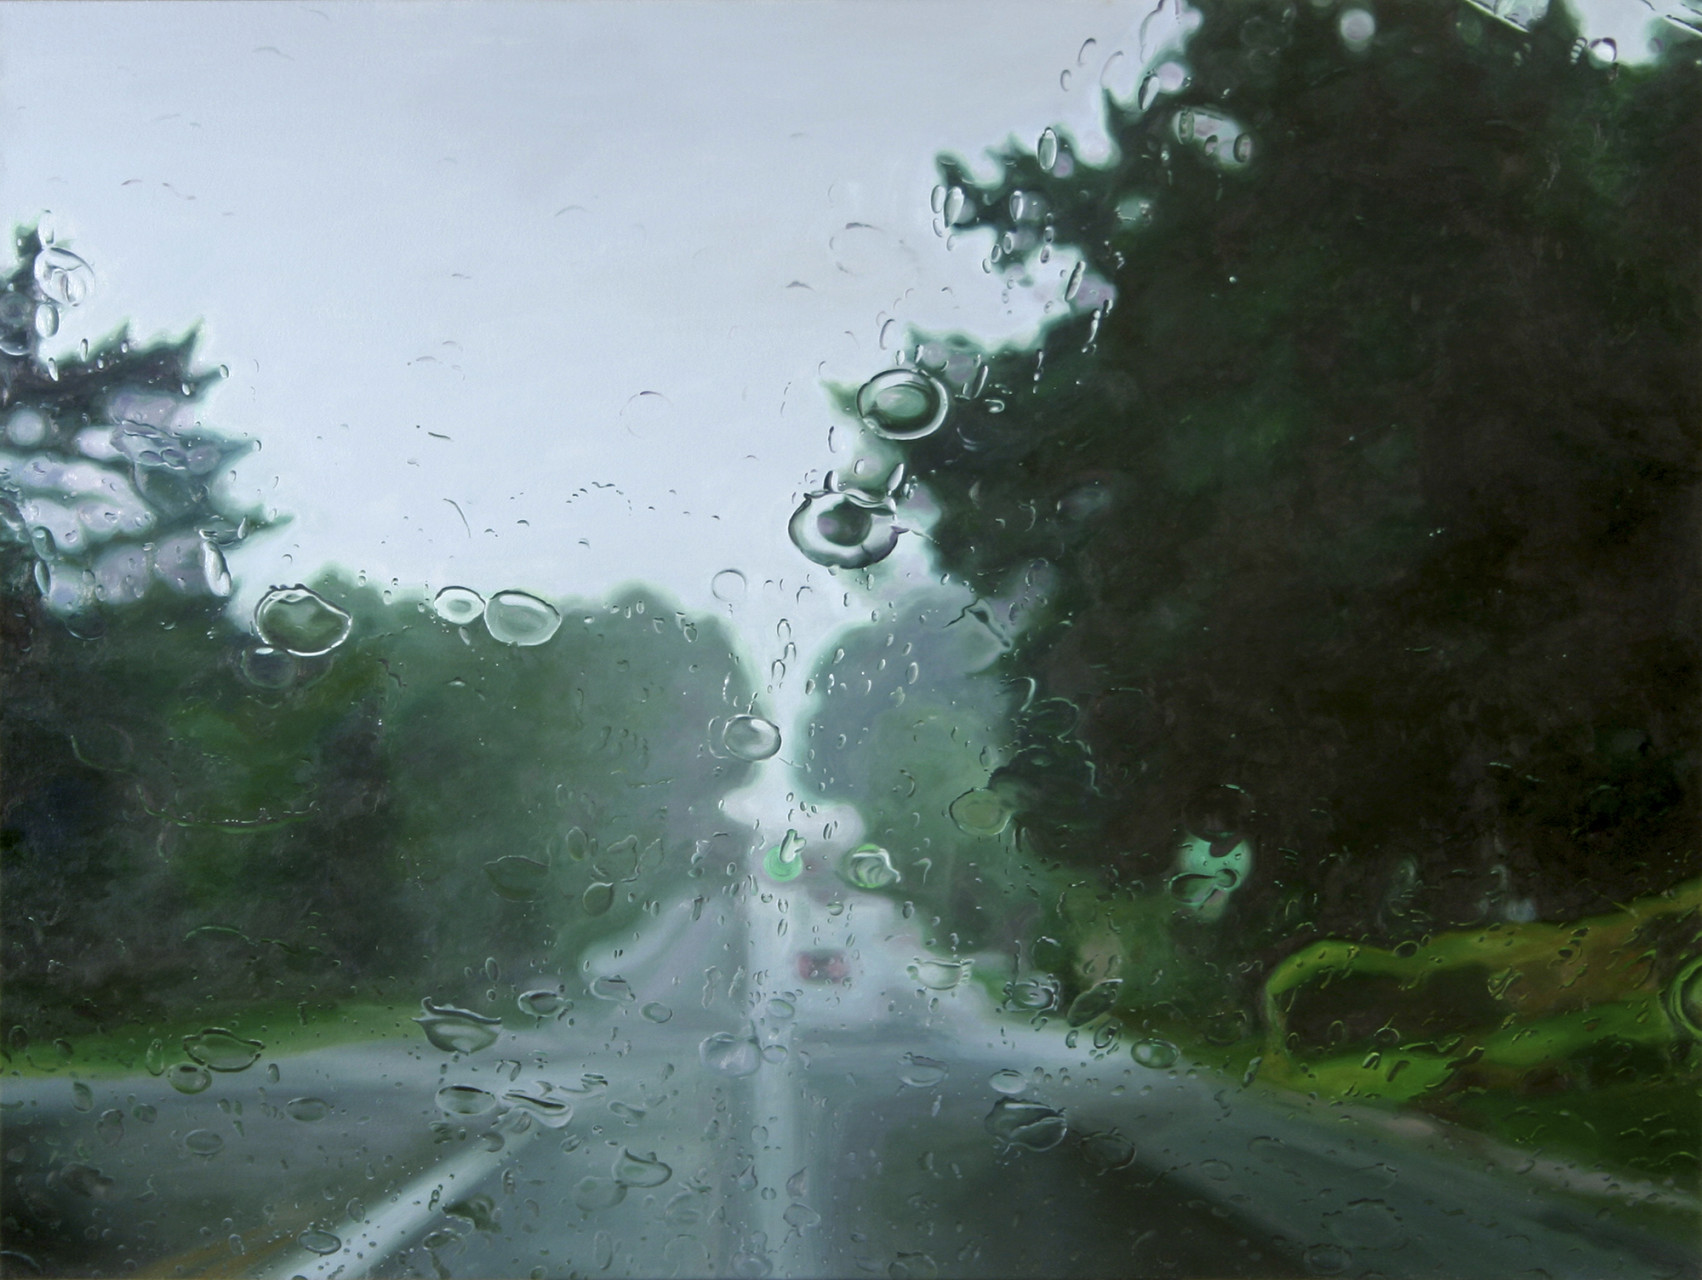 'Low road'  2006 oil on canvas 36 x 48 inches